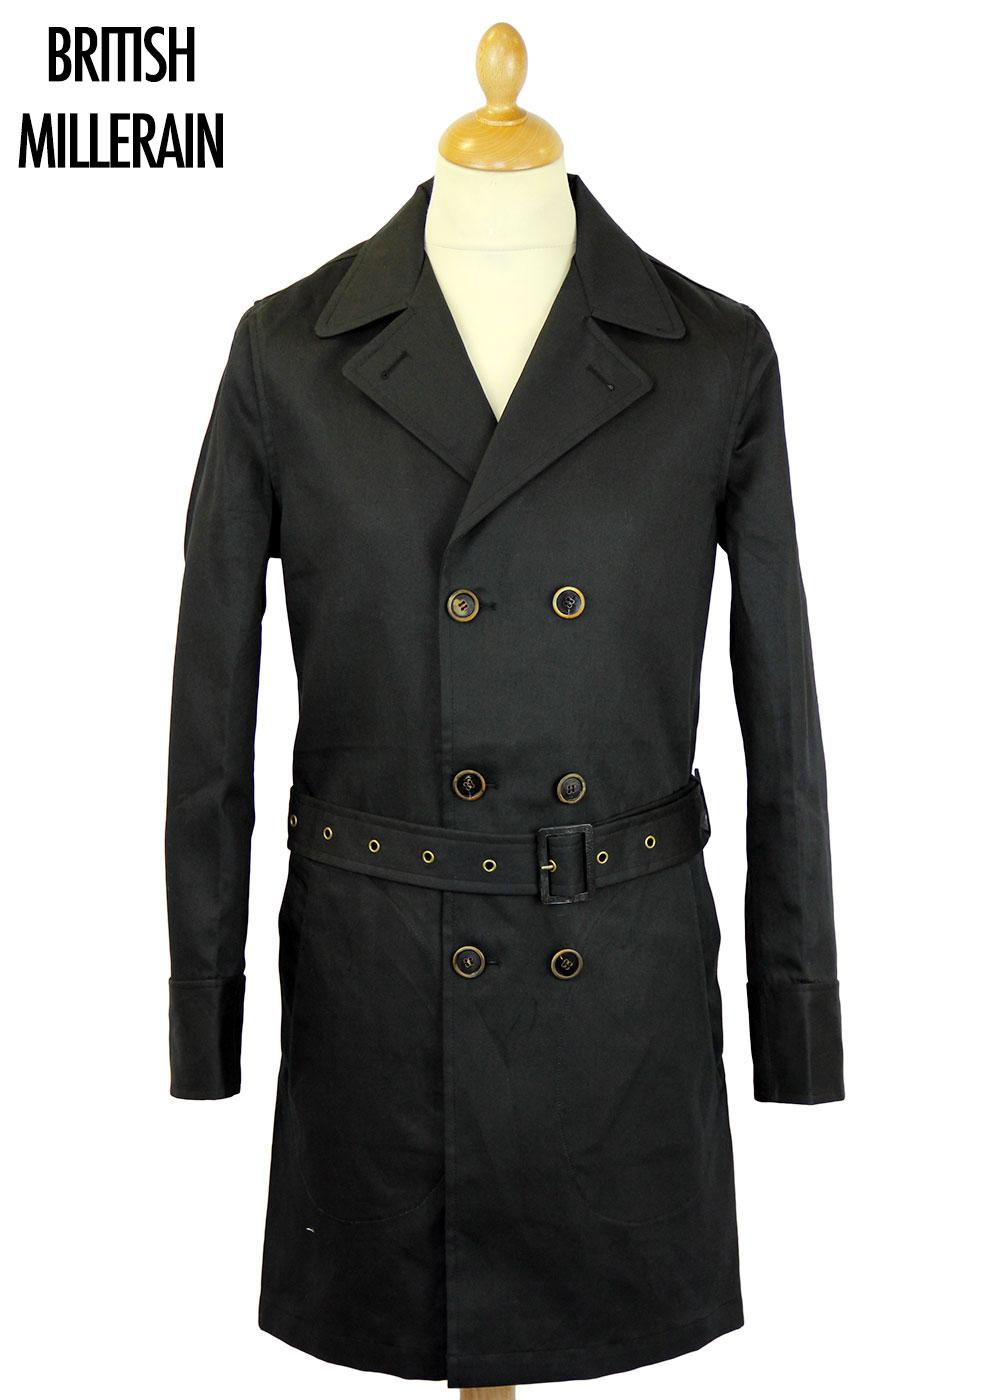 REALM & EMPIRE Retro Mod Officer Trench Coat (Bl)